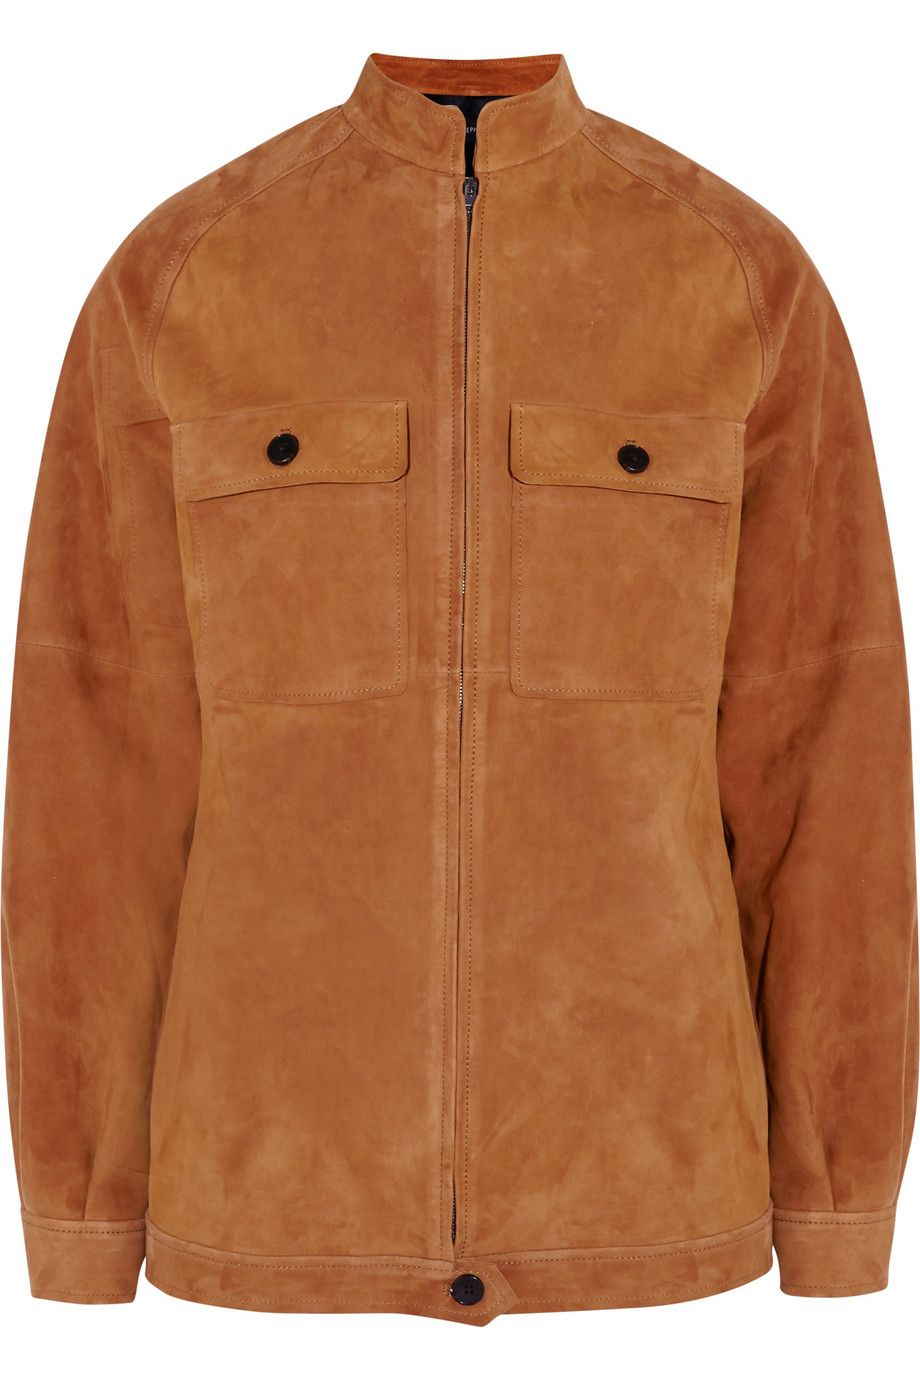 12 Brown Suede Jackets You Need forFall